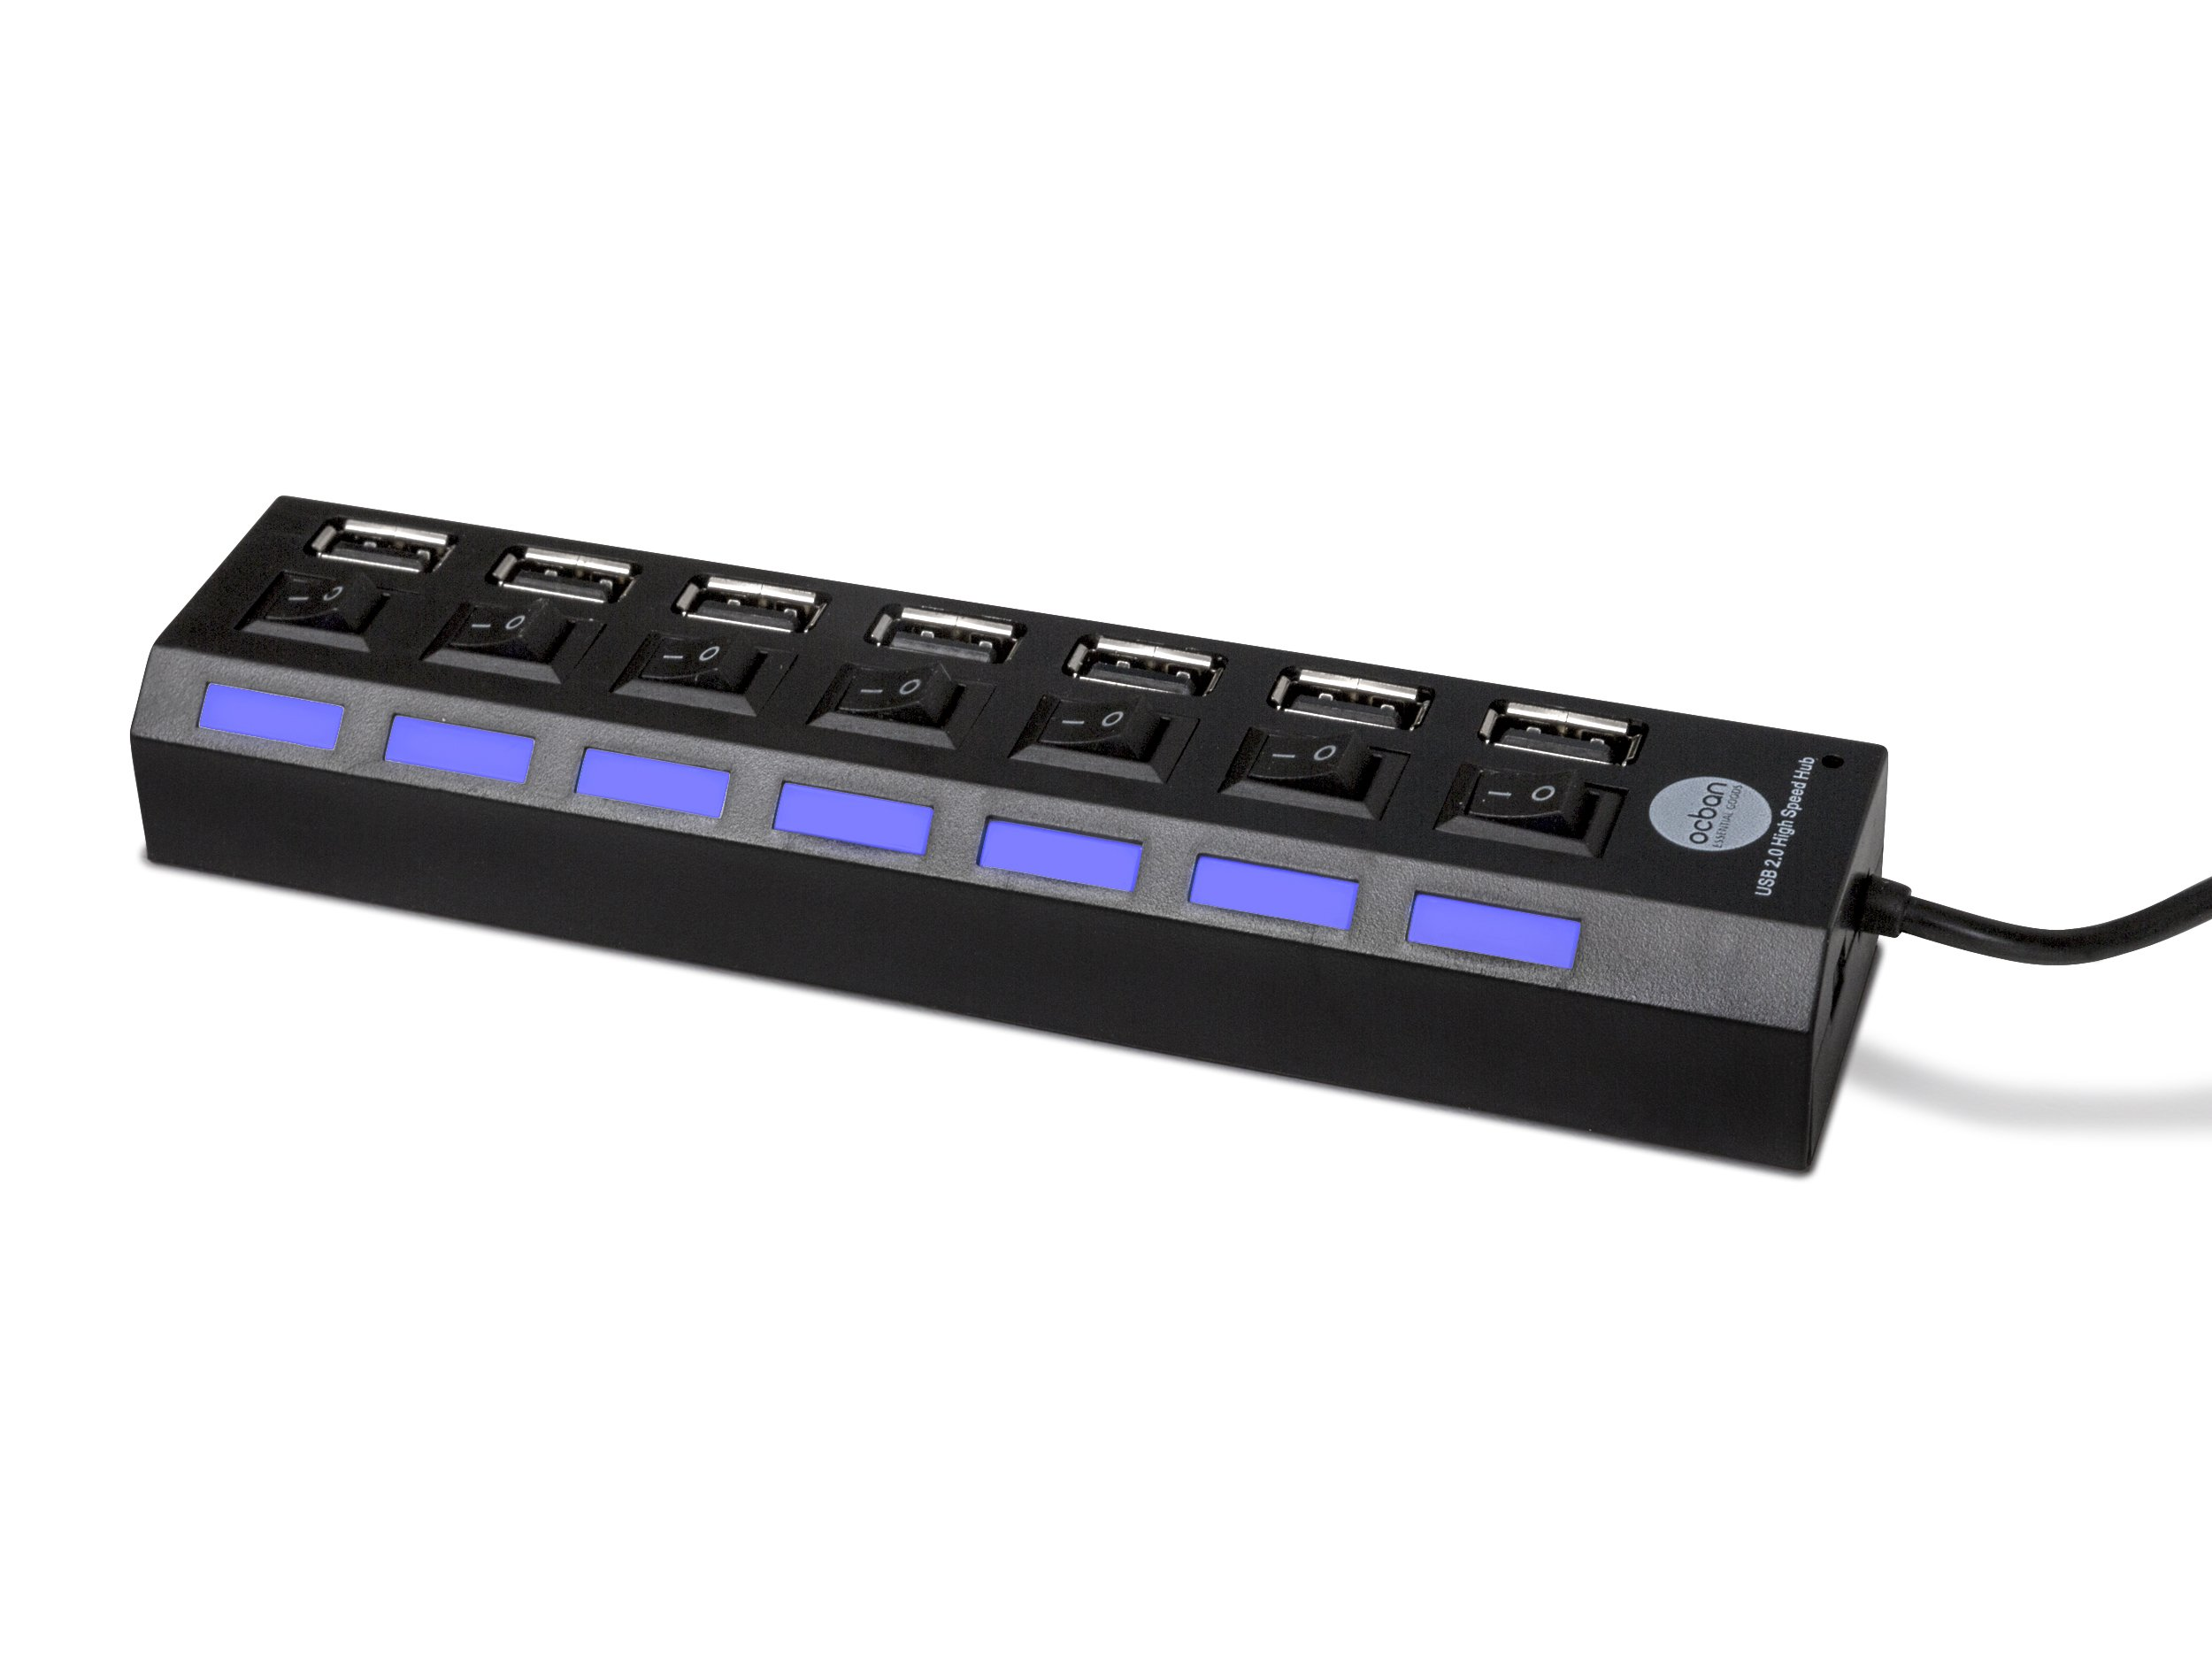 7 Port USB 2.0 Hub with Individual Power Switches and LEDs On Off Switch Design Slim Compact Lightweight Fast Communication For PC Linux Mac Windows Smarts Tvs Accessory Travel Great Price OCBAN by Ocban (Image #2)